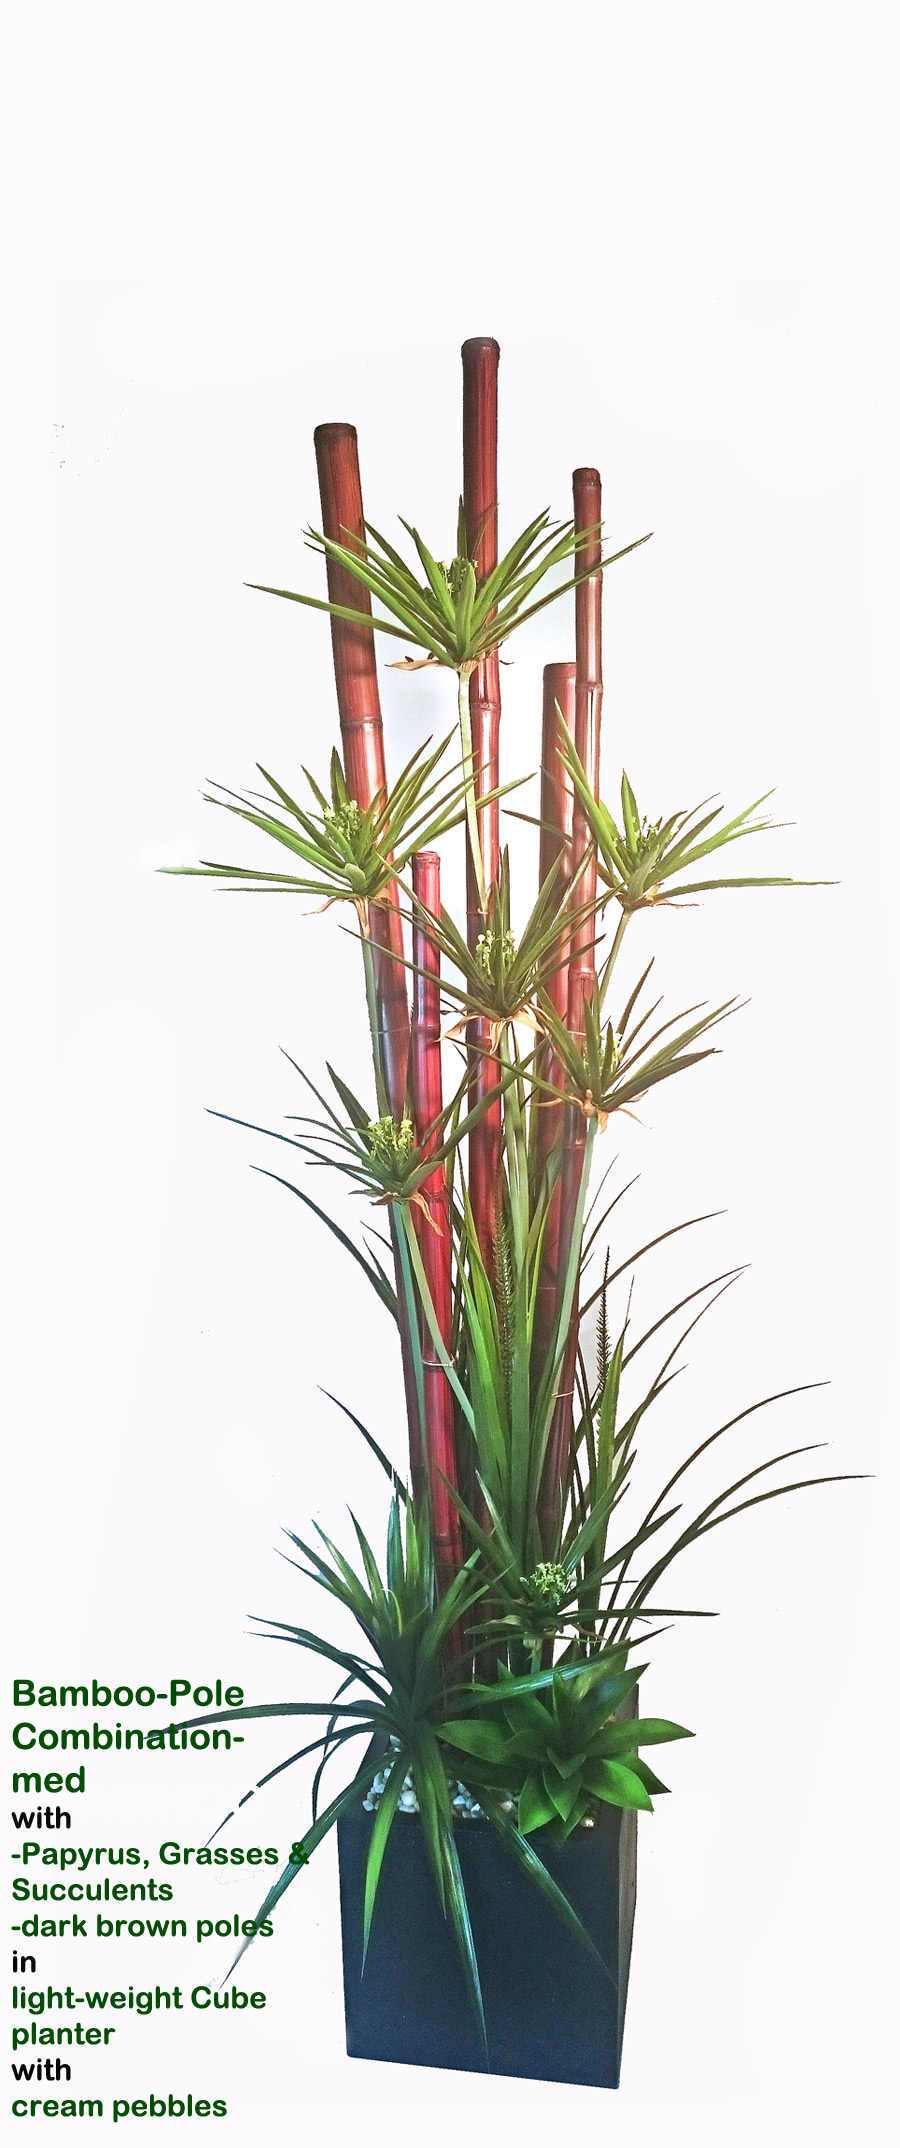 Articial Plants - Bamboo-Pole Combination- 1.8M Papyrus in light-planter